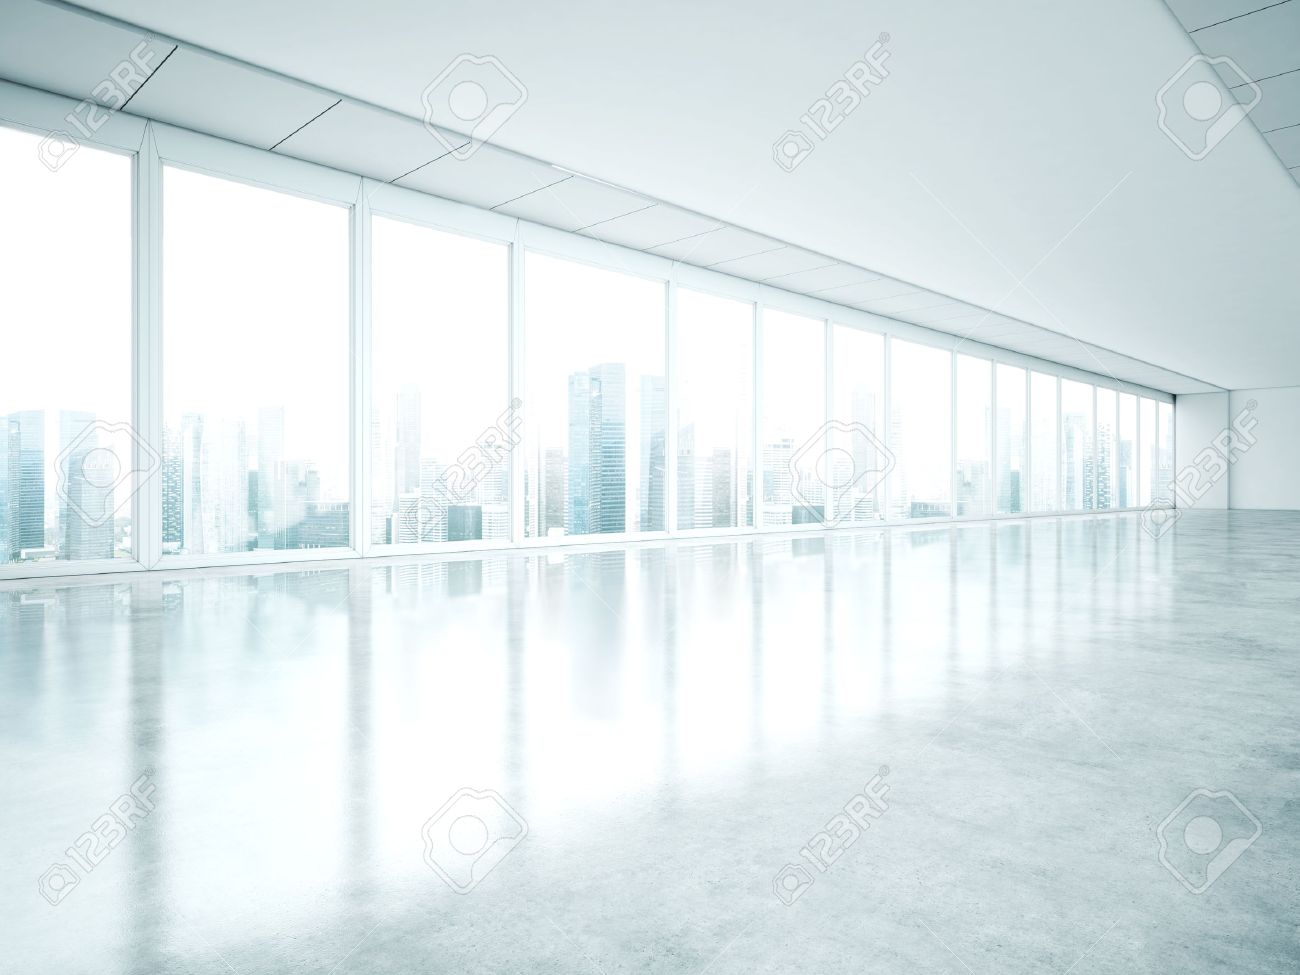 Interior office windows - White Interior With Large Windows 3d Rendering Stock Photo 40390705